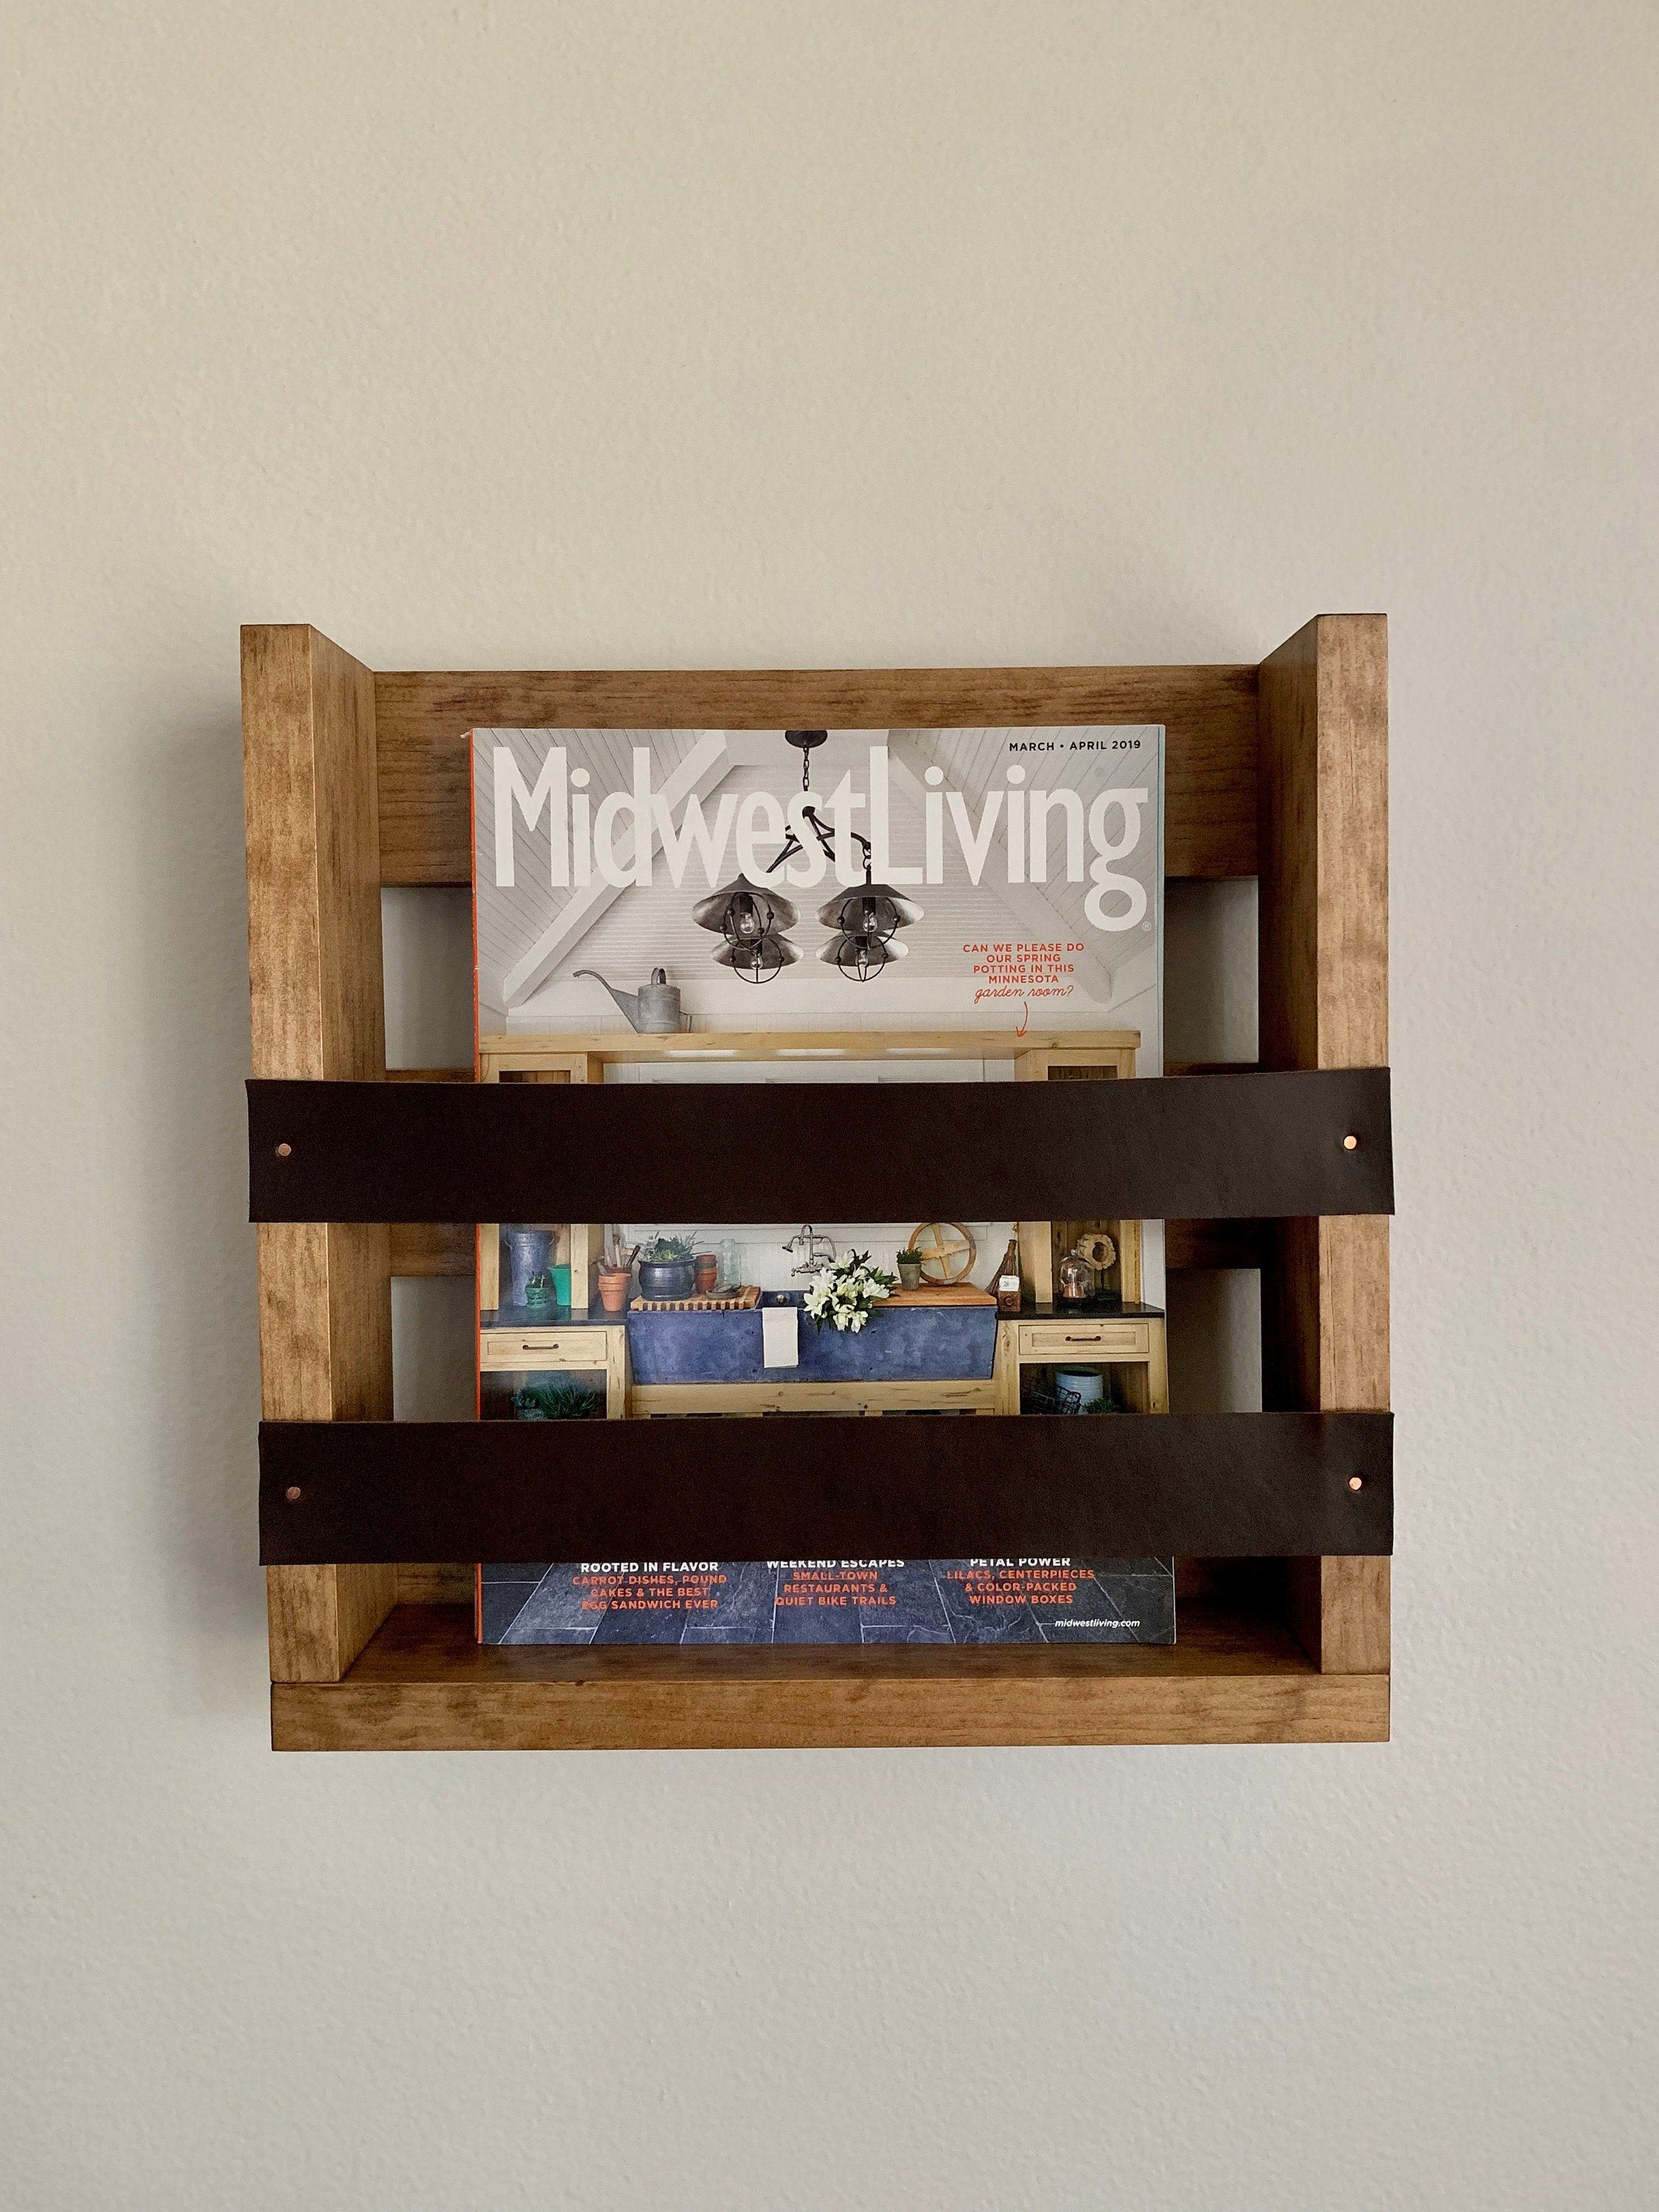 Wall Mounted Magazine Rack With Leather Accents Wall Mounted Magazine Holder With Leather Straps Modern Magazine Holder Gift Item For Her In 2020 Leather Magazine Rack Magazine Holders Magazine Rack